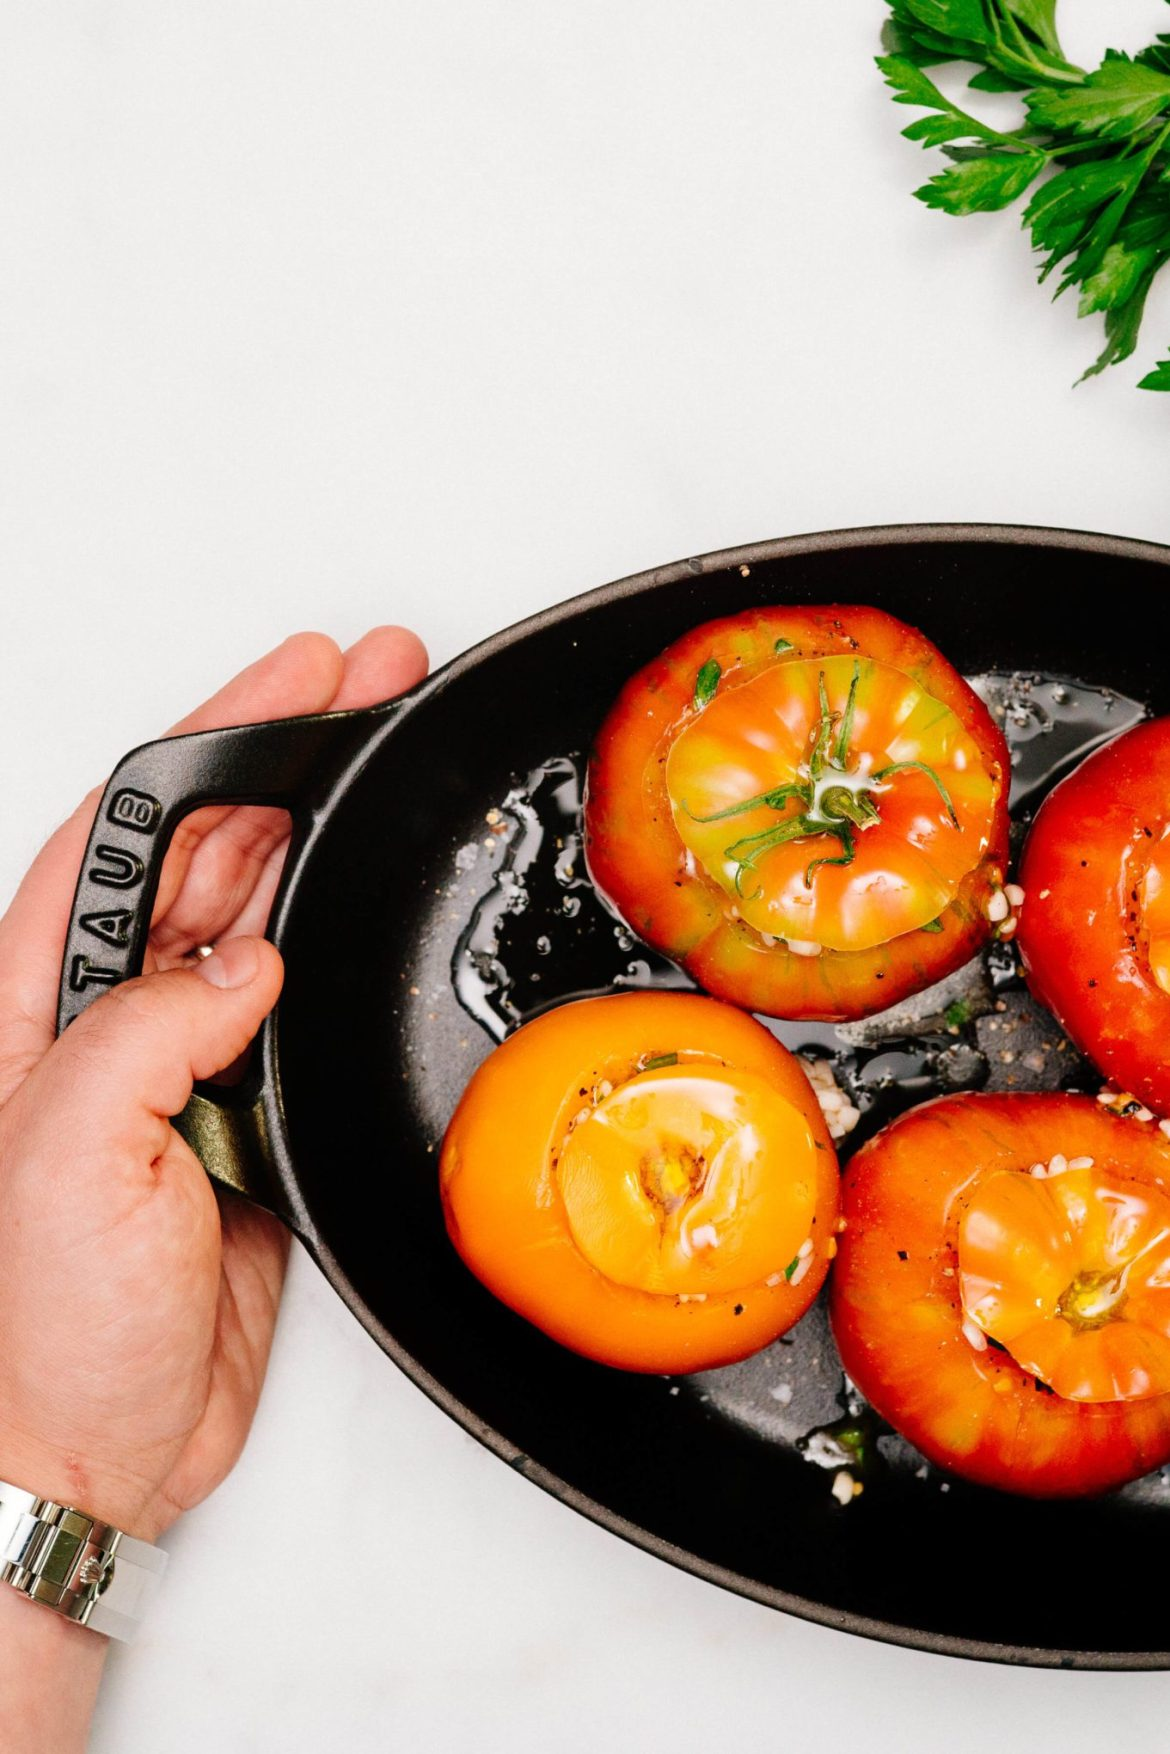 Drizzled with olive oil to make tomato confit risotto